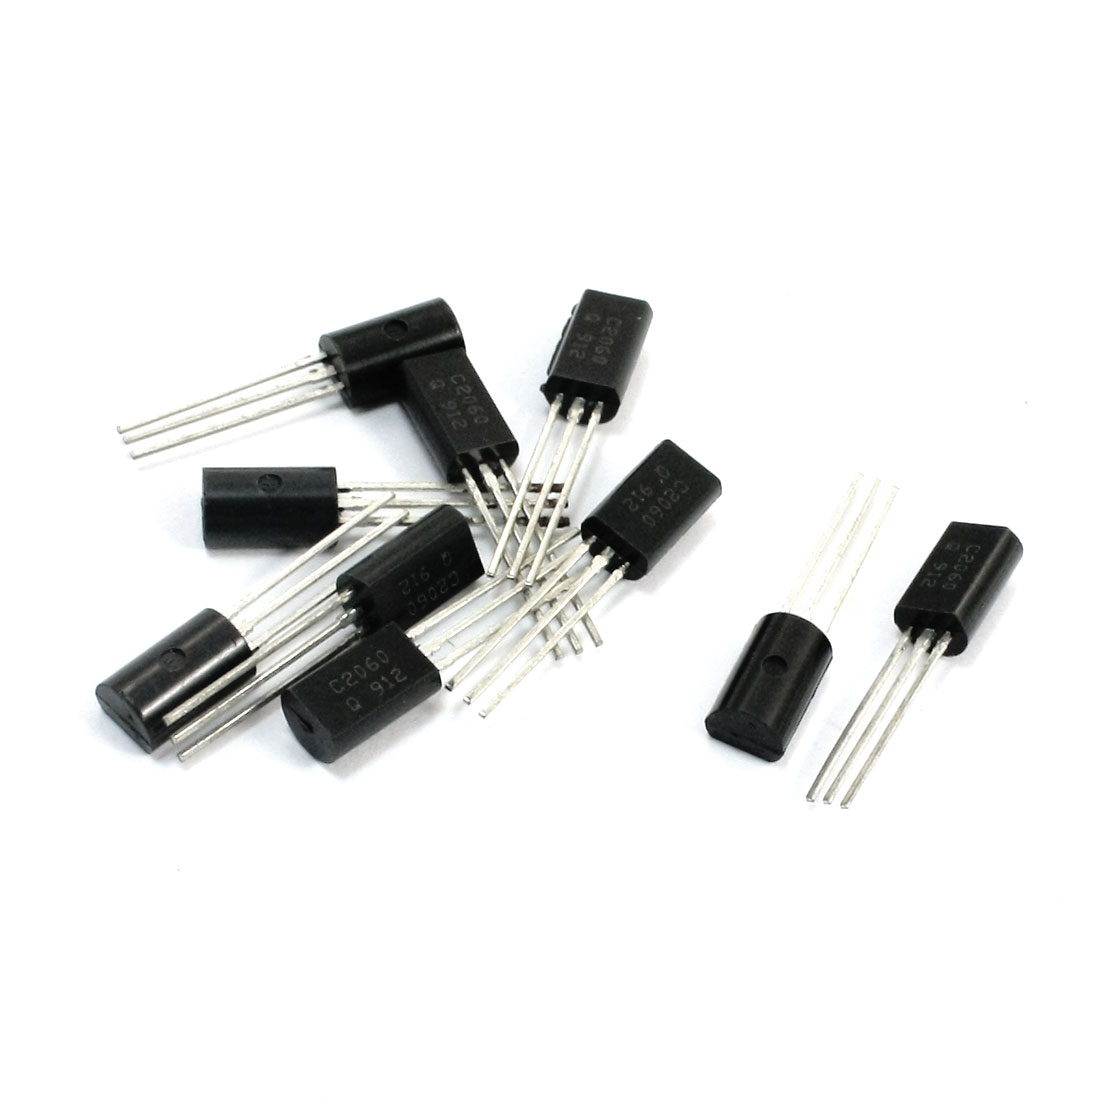 10pcs General Propose C2060 32V 2A TO-92L Package NPN Transistor